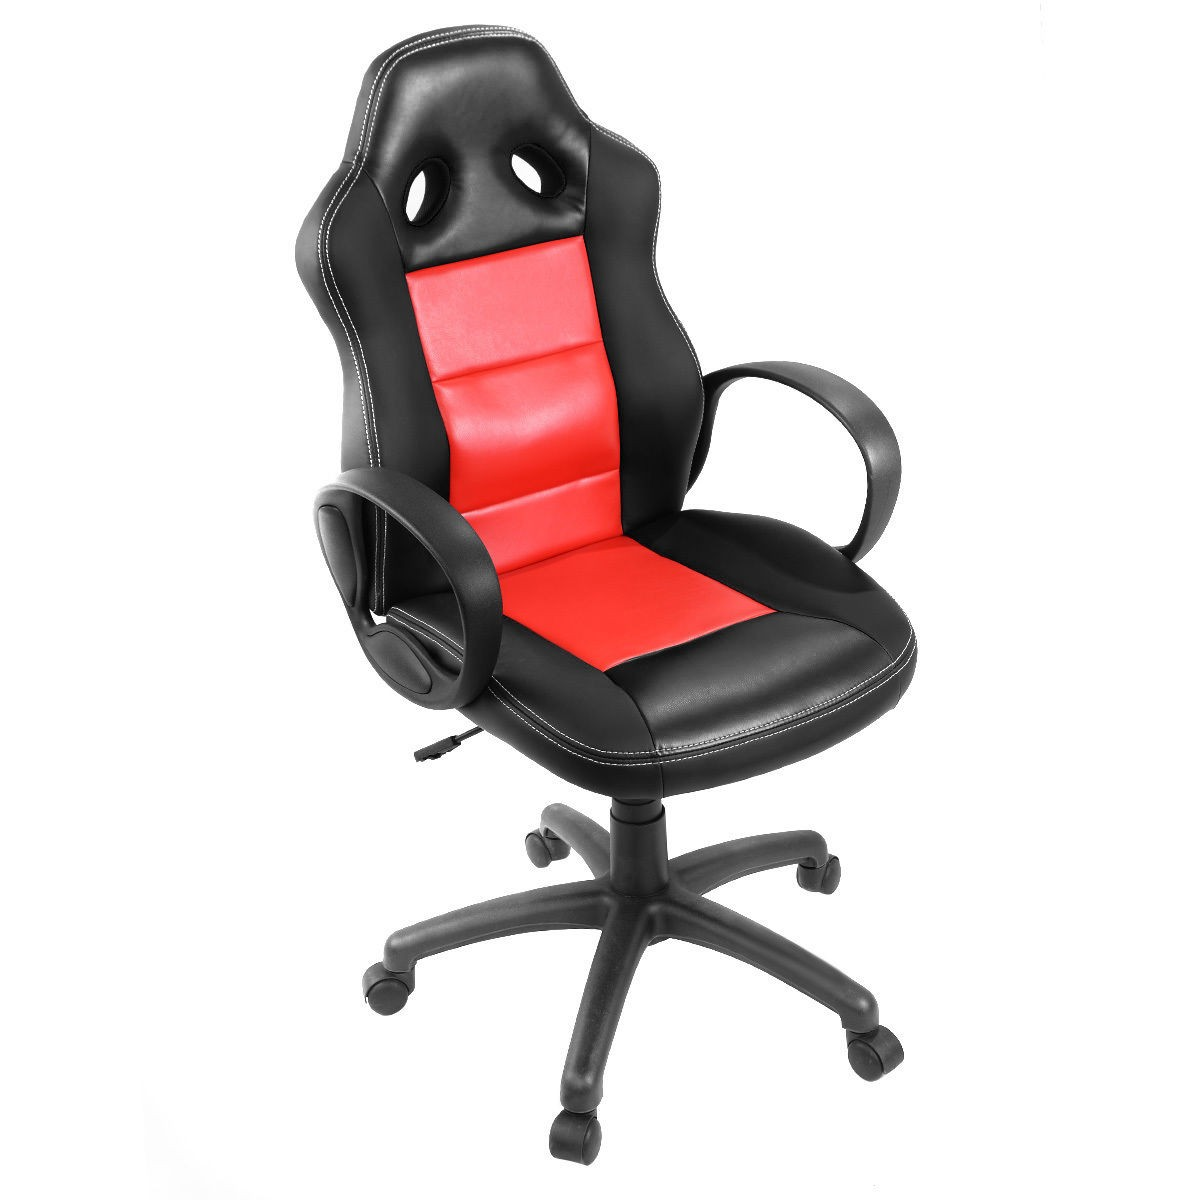 Attirant Office High Back Race Car Style Bucket Seat Desk Chair Gaming Chair PU  Leather | EBay